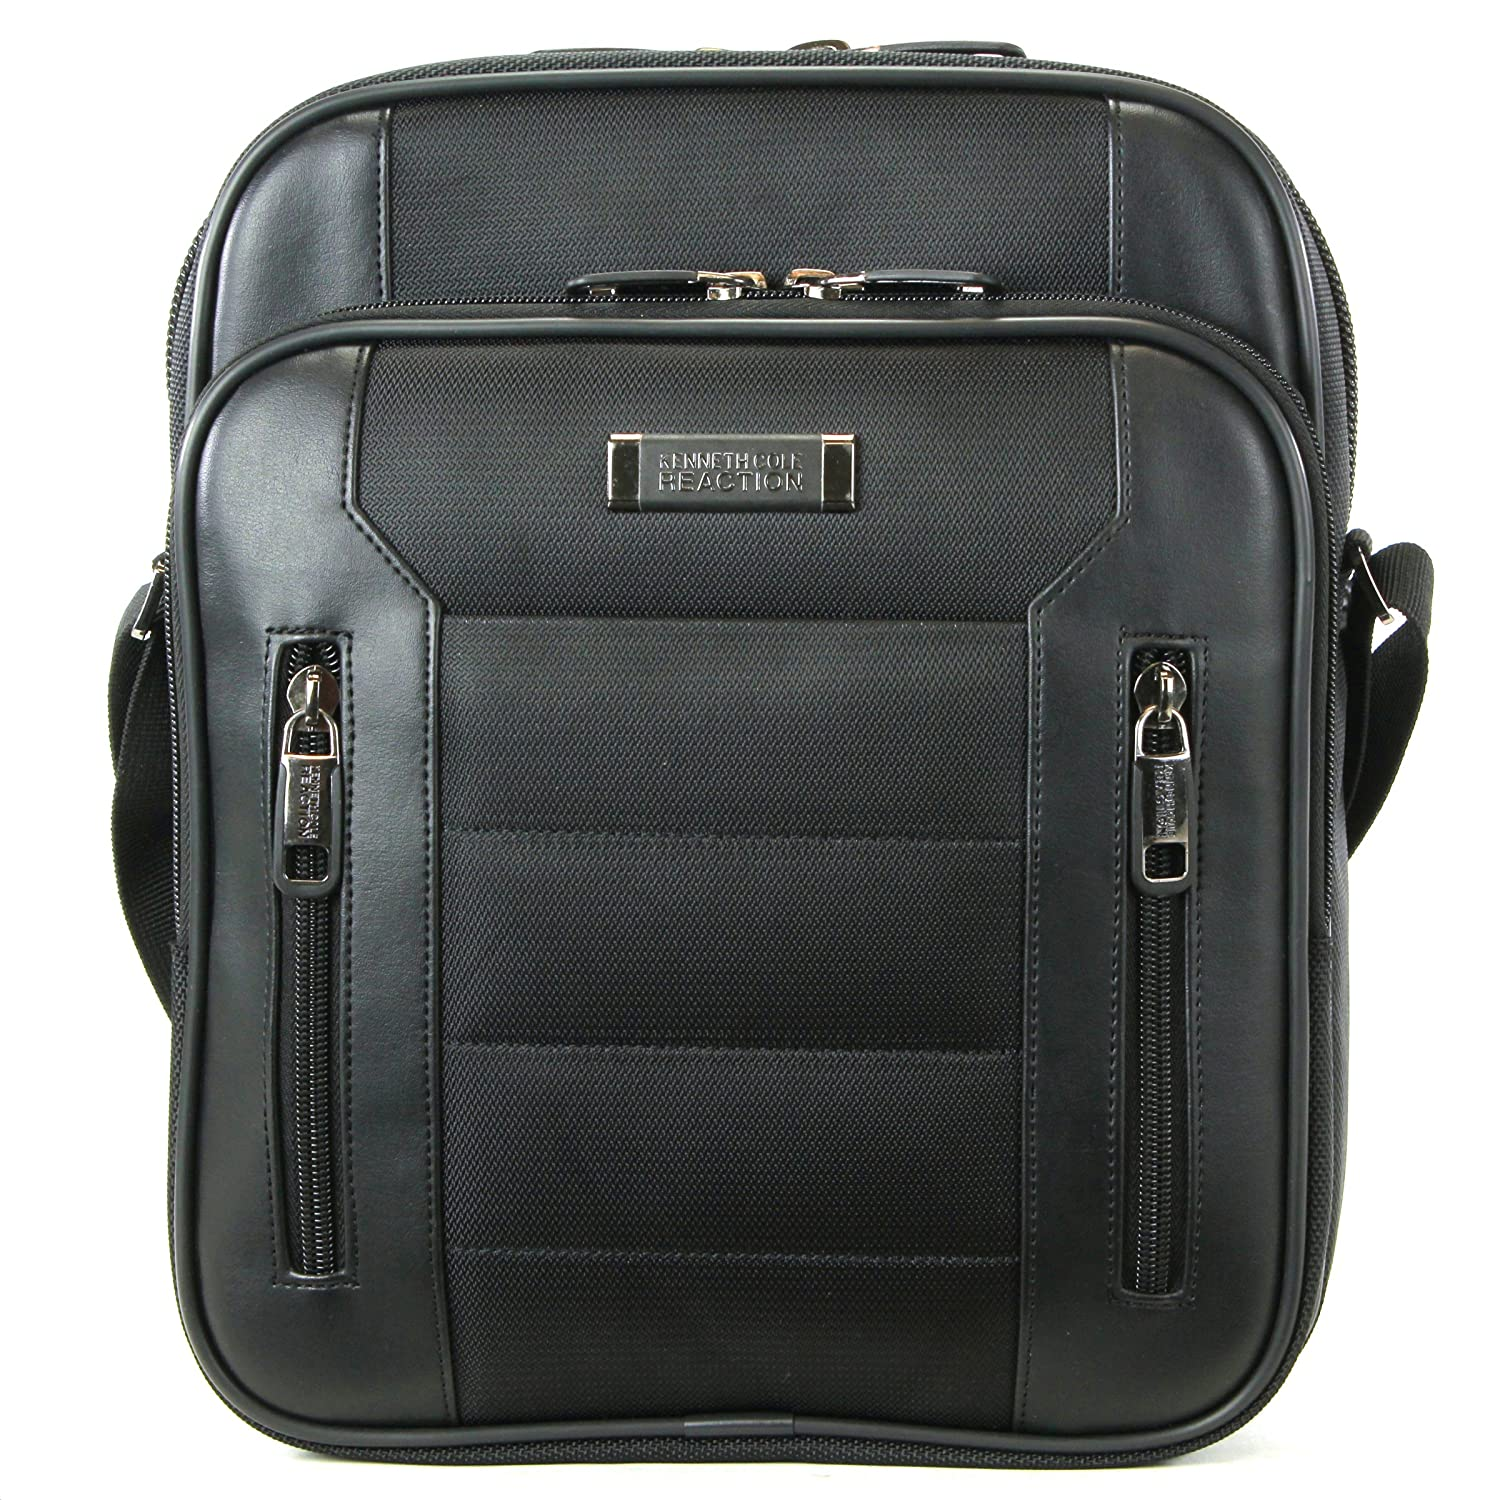 Kenneth Cole Reaction Luggage Night And Day Bag, Black, One Size Heritage-Kenneth Cole Luggage 538385